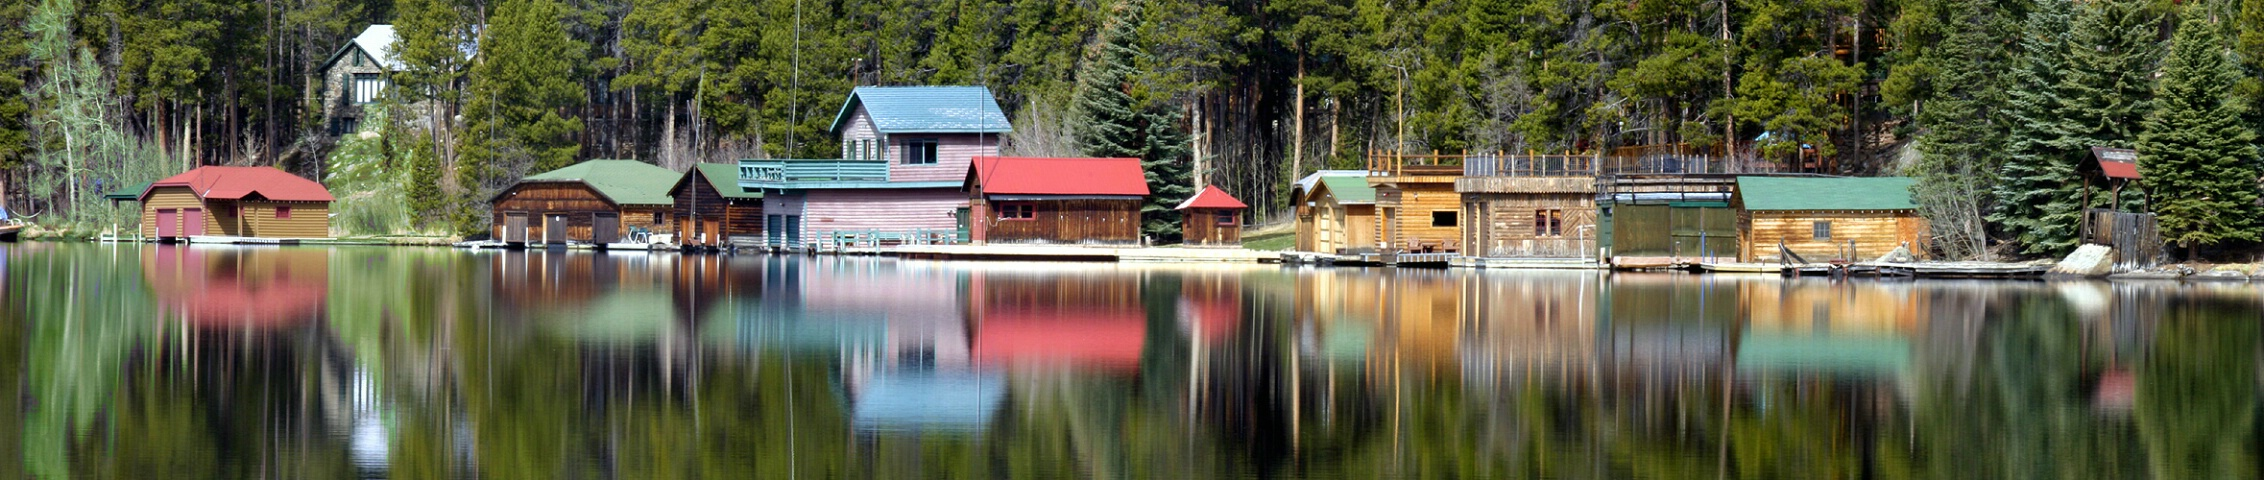 Boathouses on the North Shore